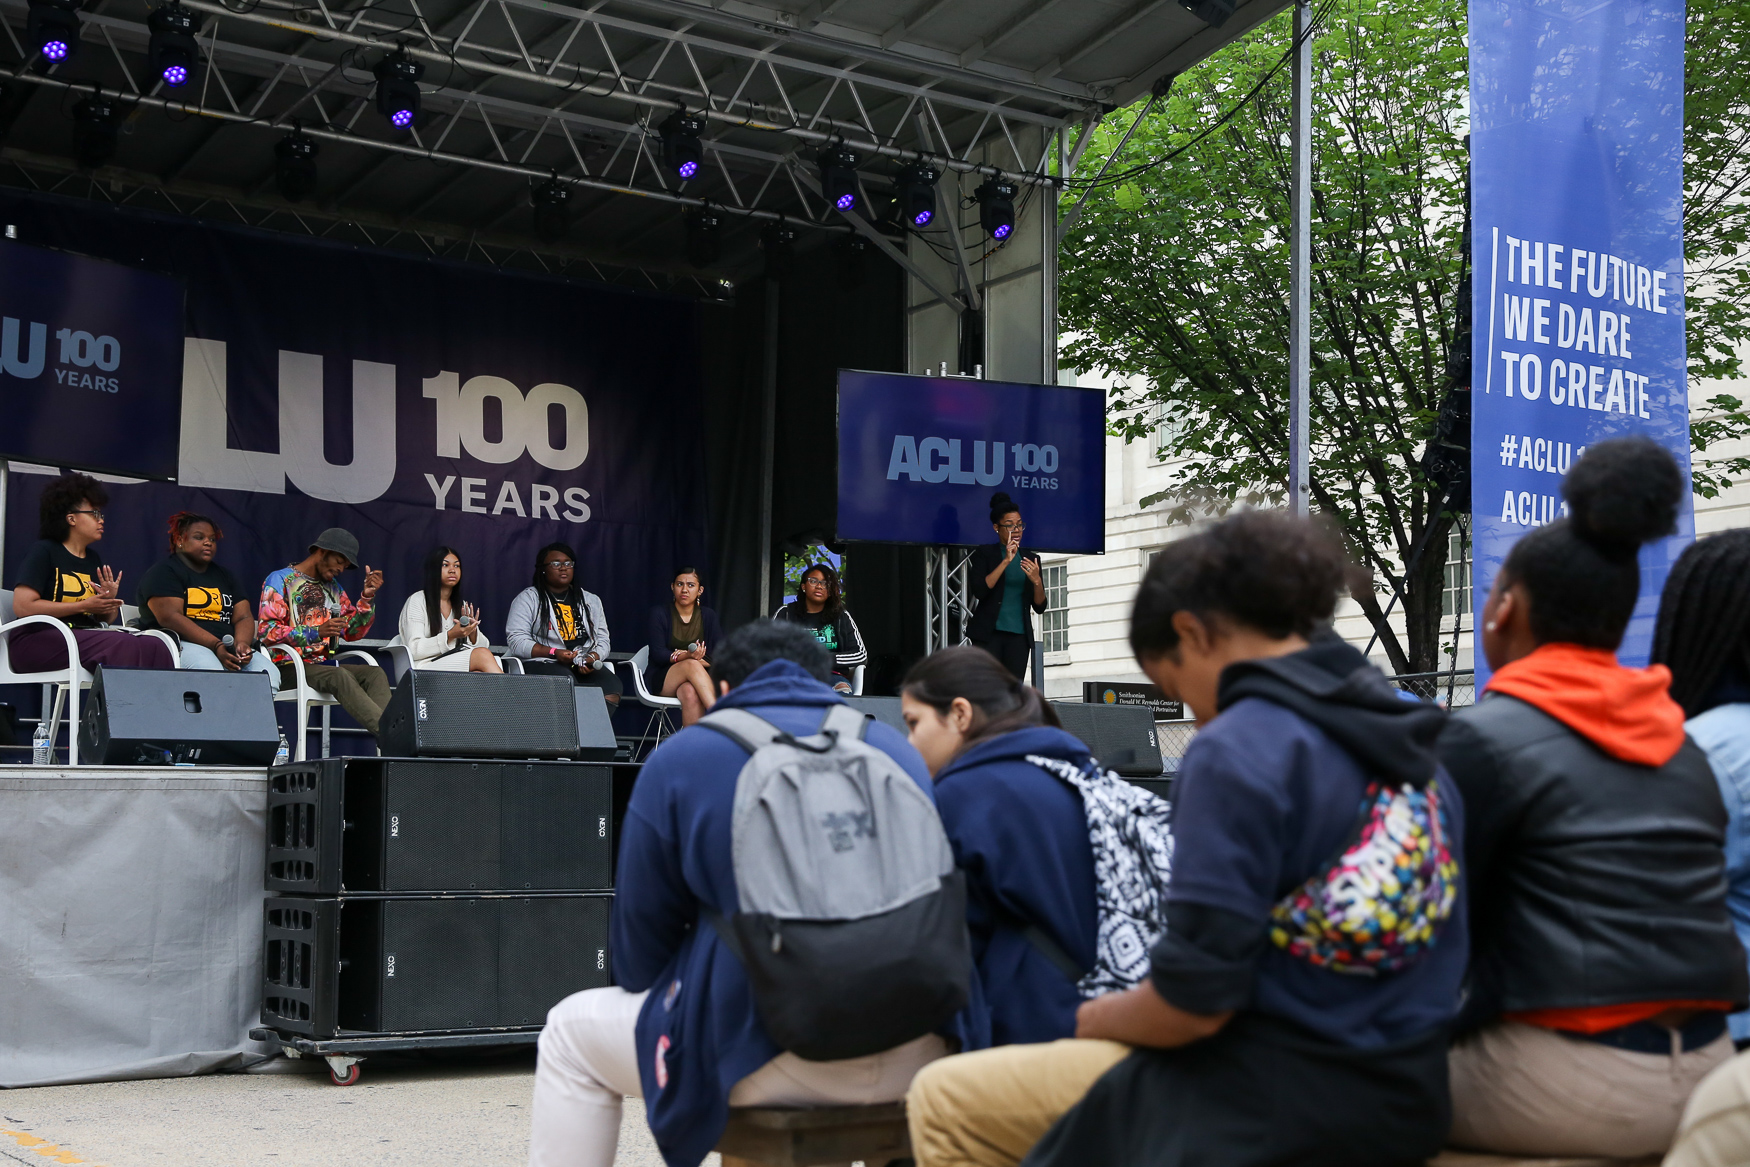 The American Civil Liberties Union (ACLU) is turning 100 next year and they're marking the occasion with a pop-up in downtown D.C. this weekend. The pop-up is meant as a way to raise awareness for some of the issues the ACLU is currently focused on, such as voting rights, protecting immigrants, supporting the LGBTQ+ community and prison reform. The free pop-up includes informational exhibits, speakers, discussions and live performances.Visitors can make buttons, protest signs, learn how to contact legislators and donate money to the cause. The ACLU's pop-up{ }